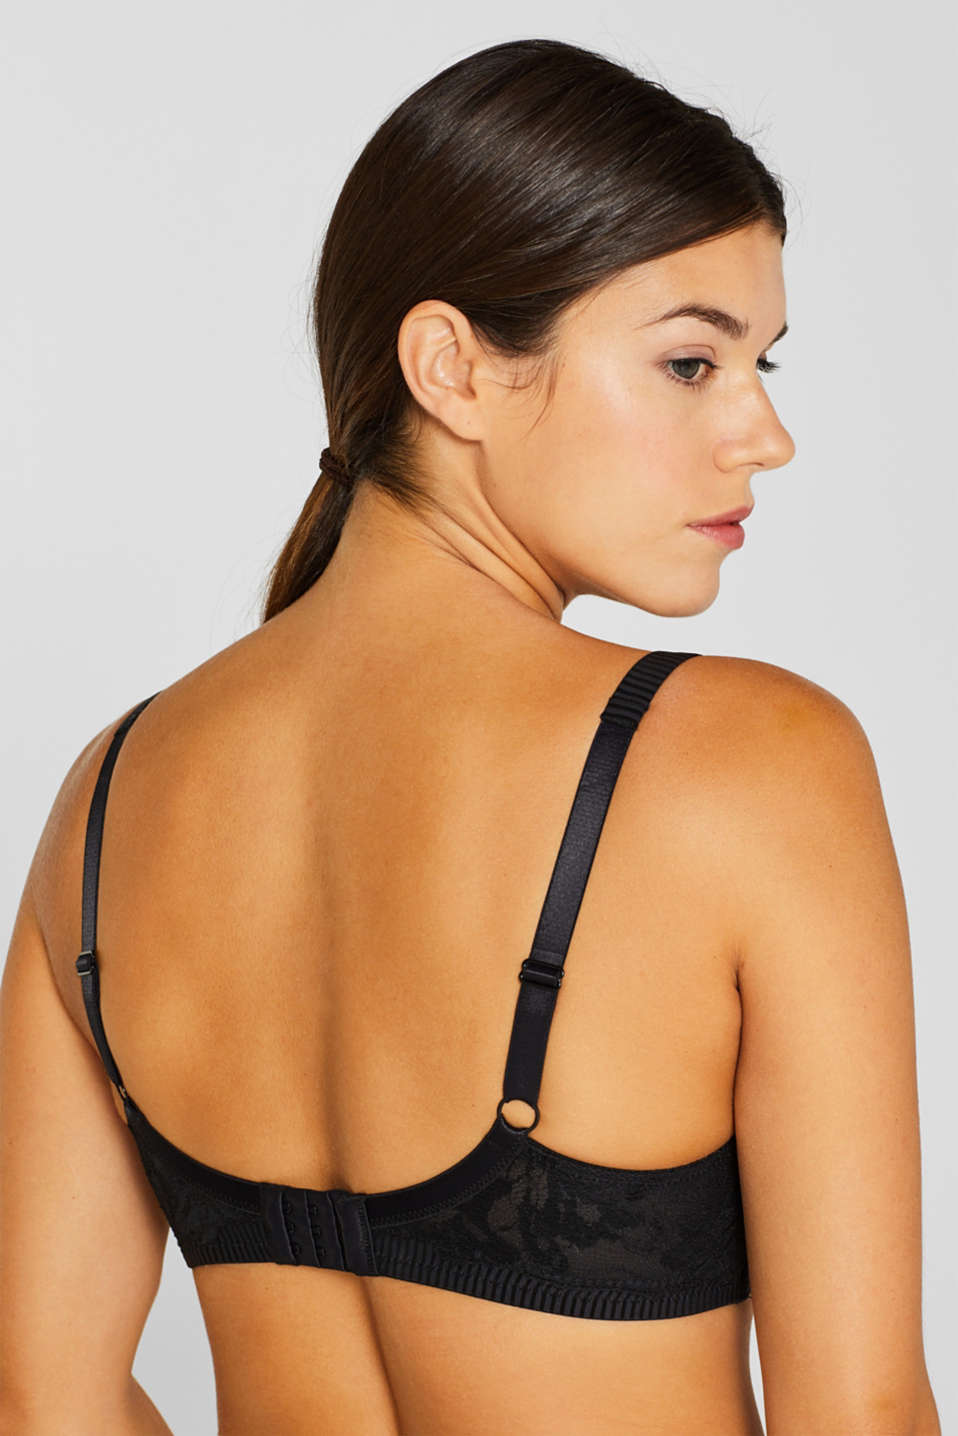 Padded lace bra for larger cup sizes, BLACK, detail image number 3